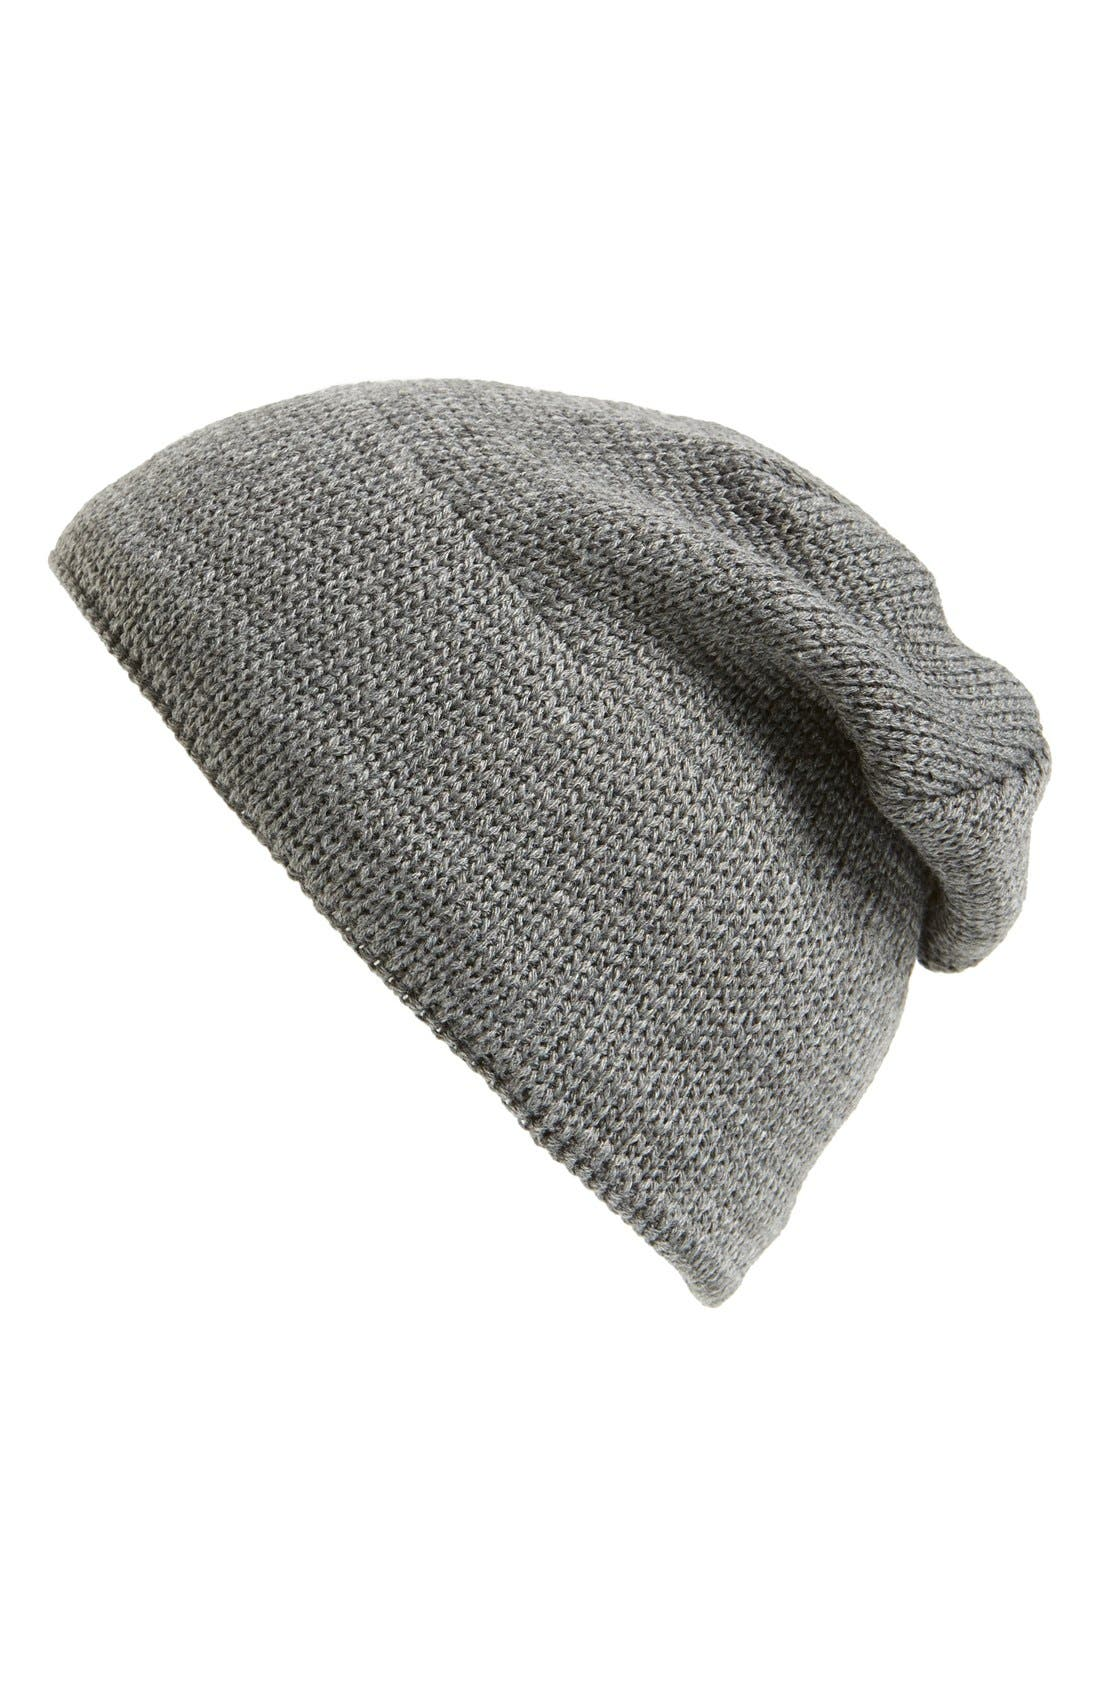 Main Image - The Rail Fleece Lined Beanie